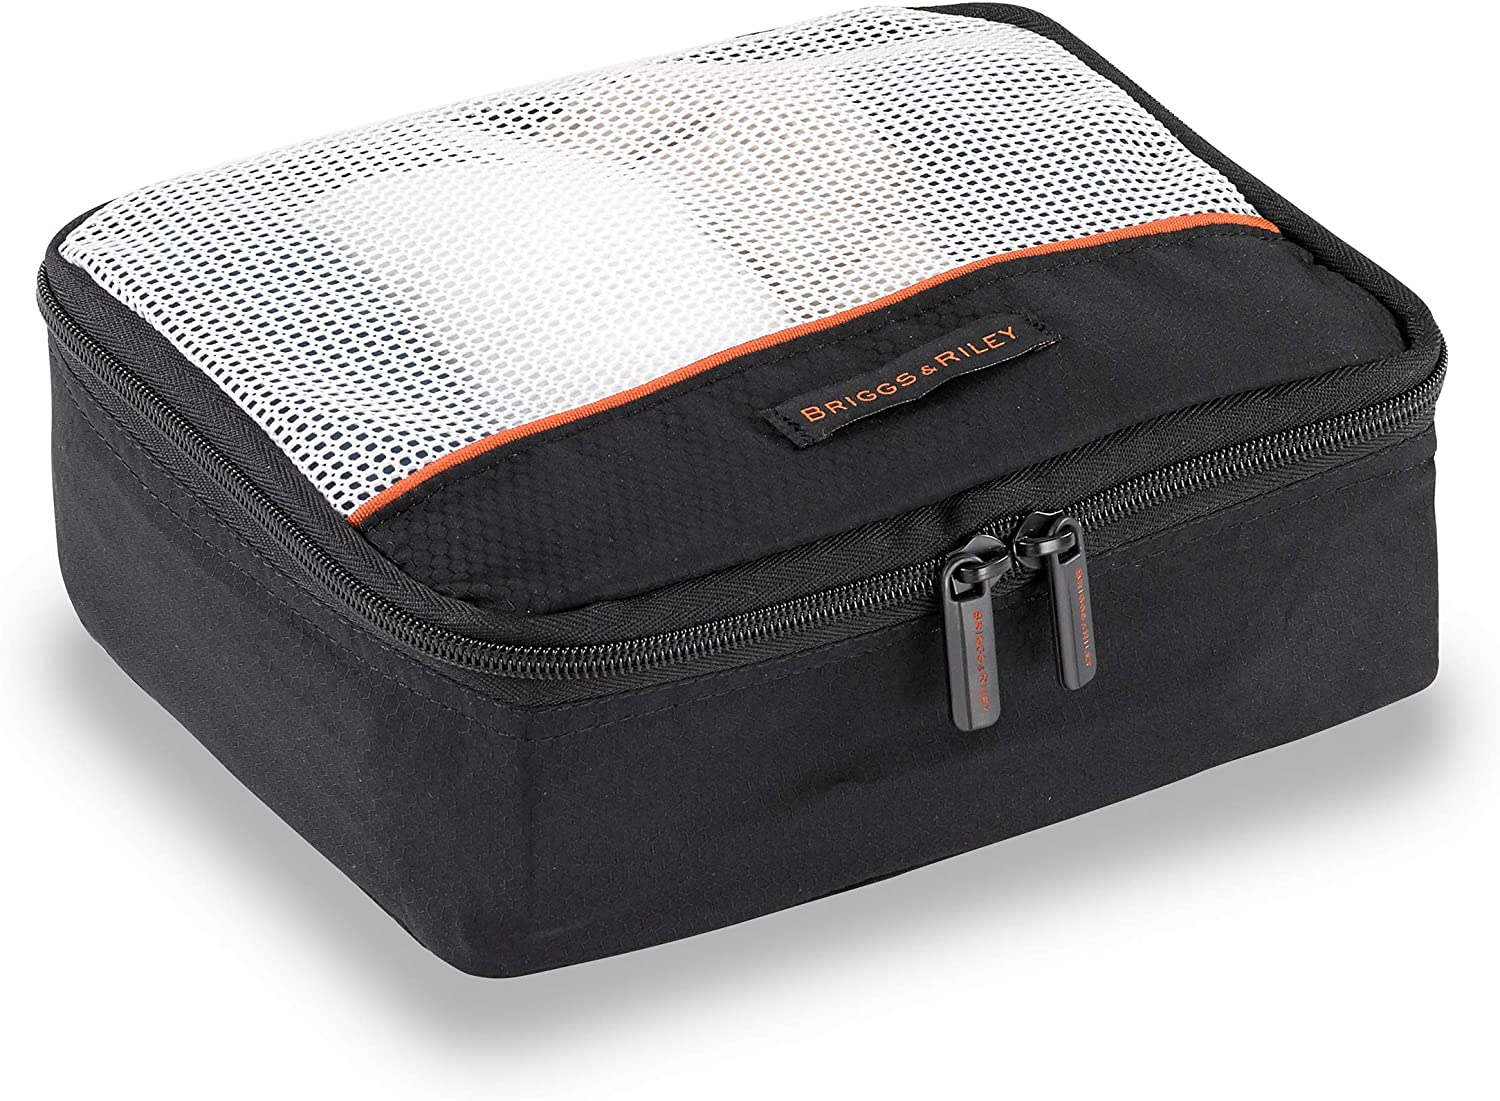 Briggs /& Riley 3 Pack Zippered Packing Cubes//Luggage Organizers for Travel Black